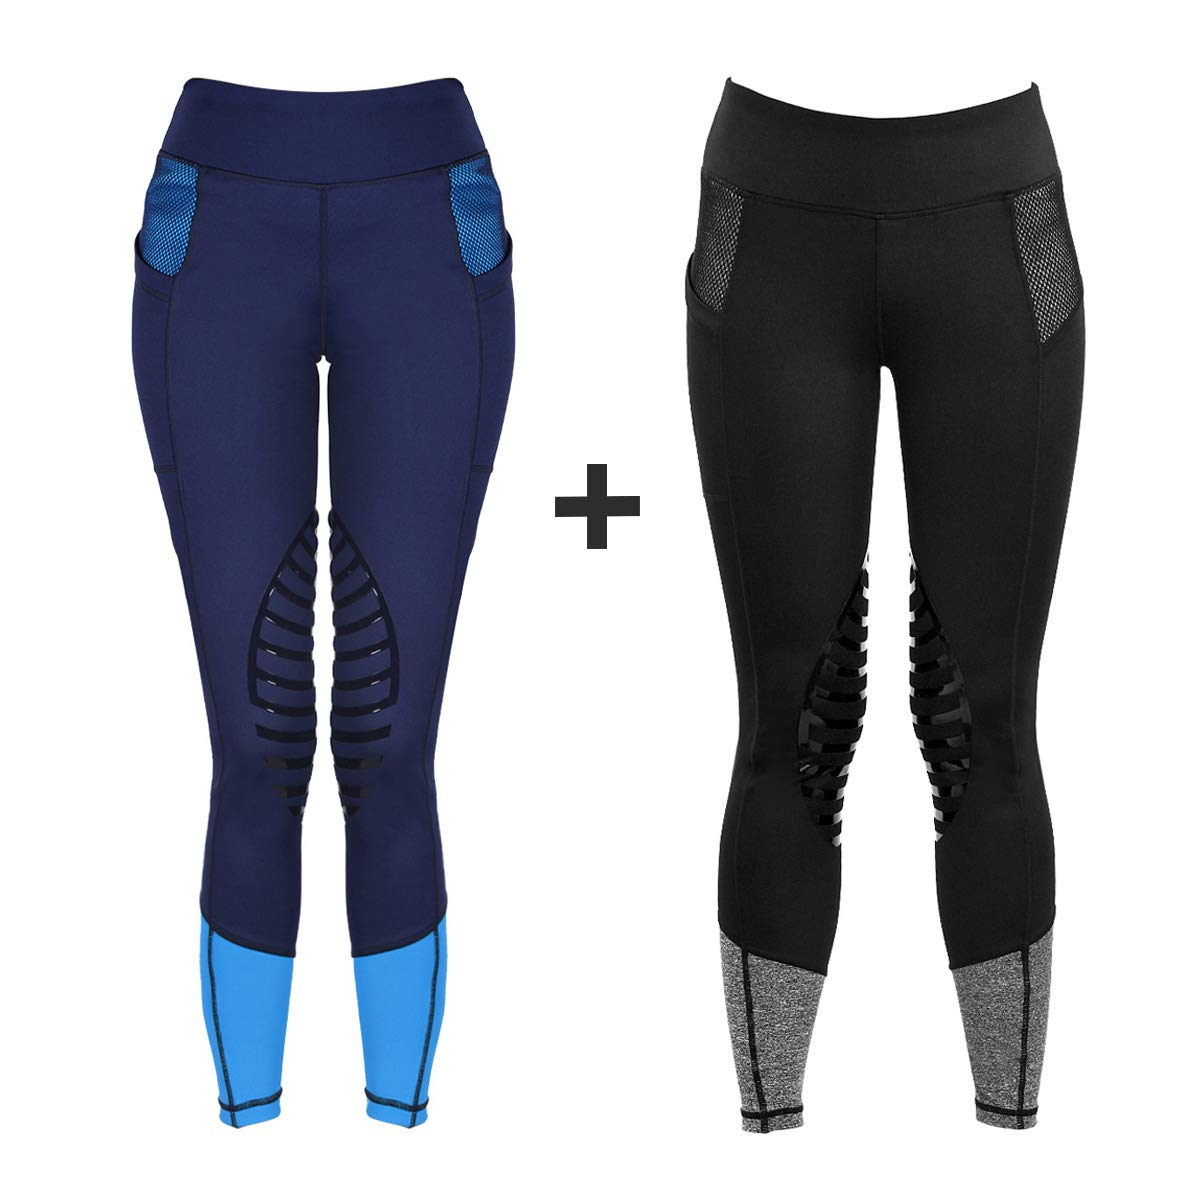 HR Farm Women's Silicone Tights Horse Riding Gel Grip Pull On Leggings with Pocket (Black+ Navy, XS)